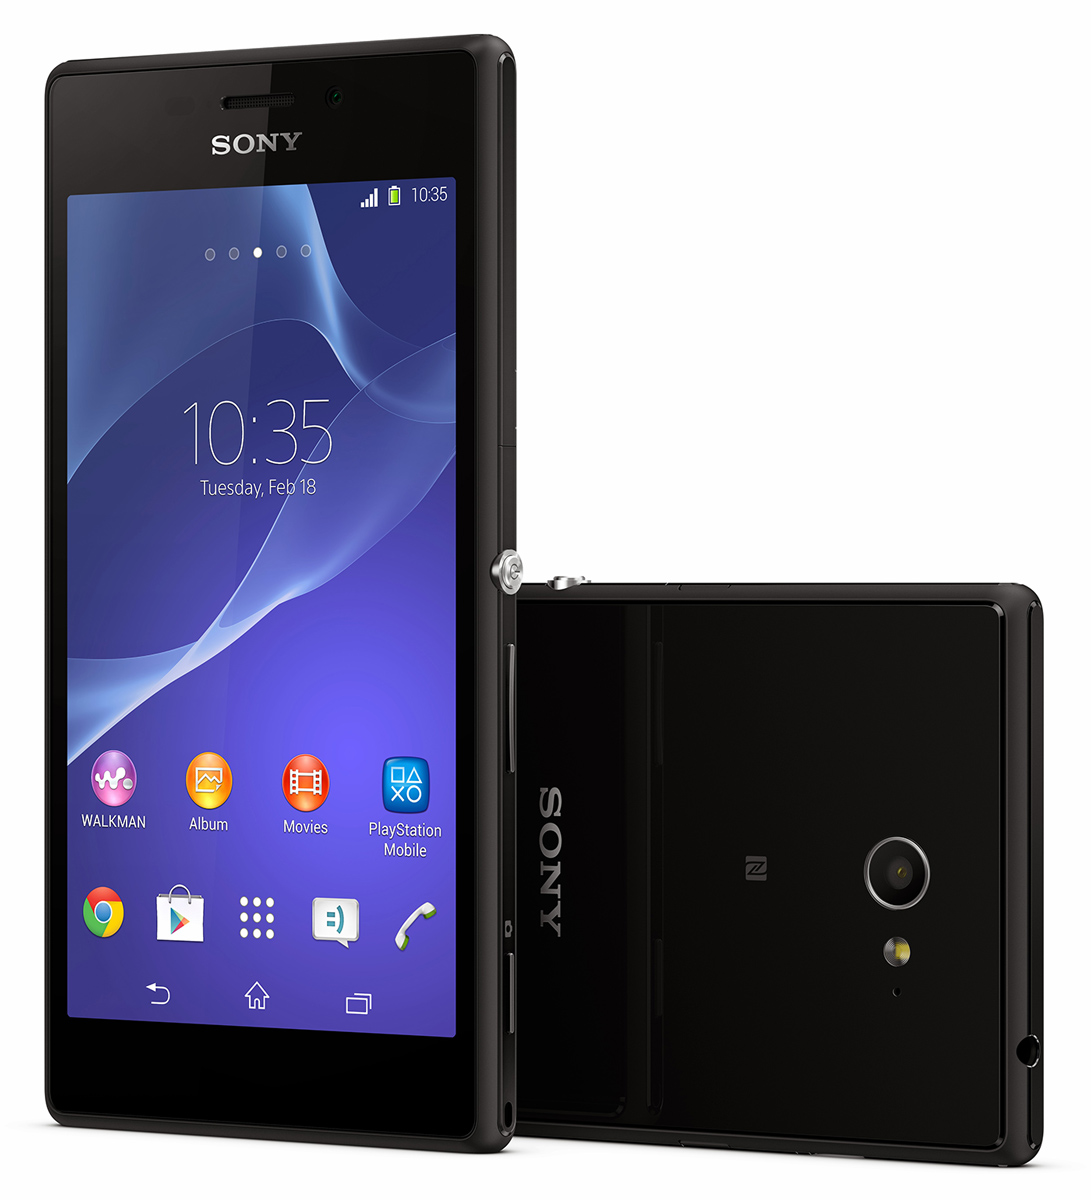 Xperia M Specifications Sony Xperia M2 ...